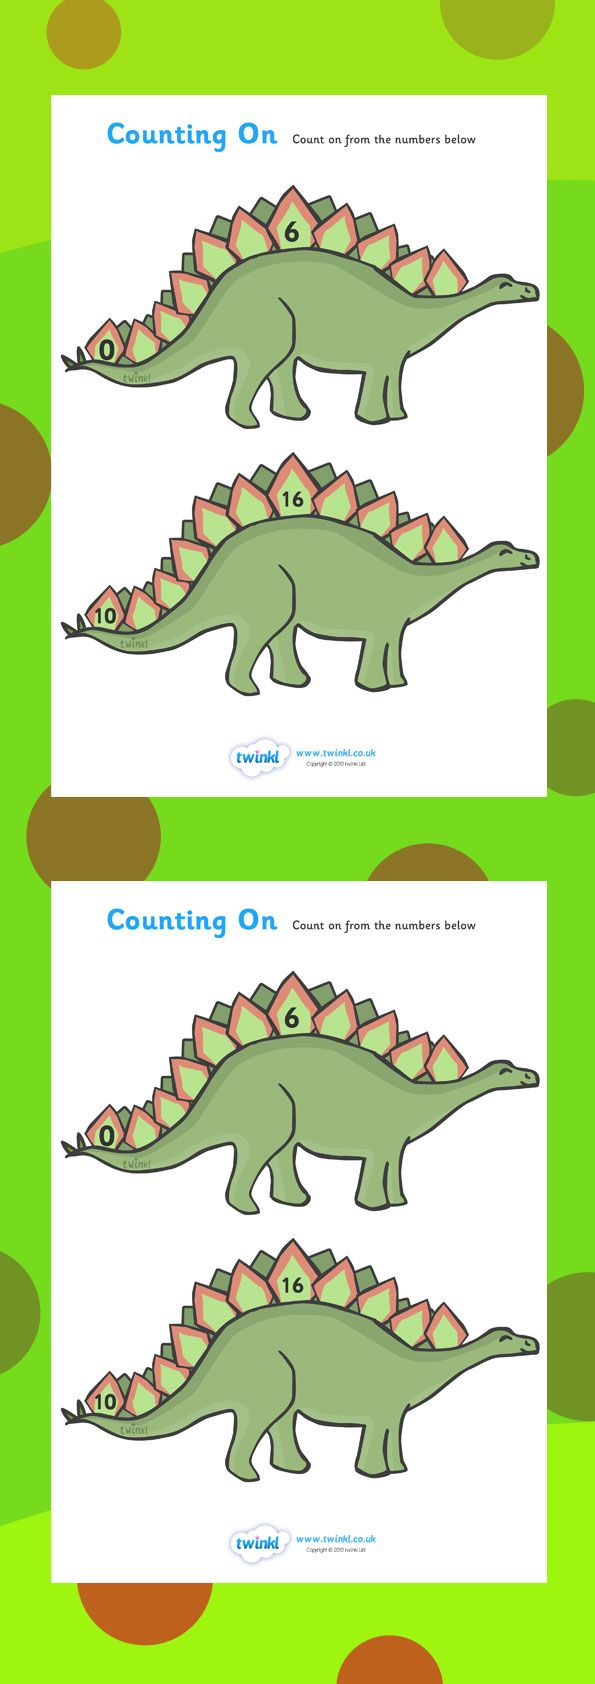 counting on worksheets dinosaurs home school twinkl dinosaurs maths counting teaching. Black Bedroom Furniture Sets. Home Design Ideas